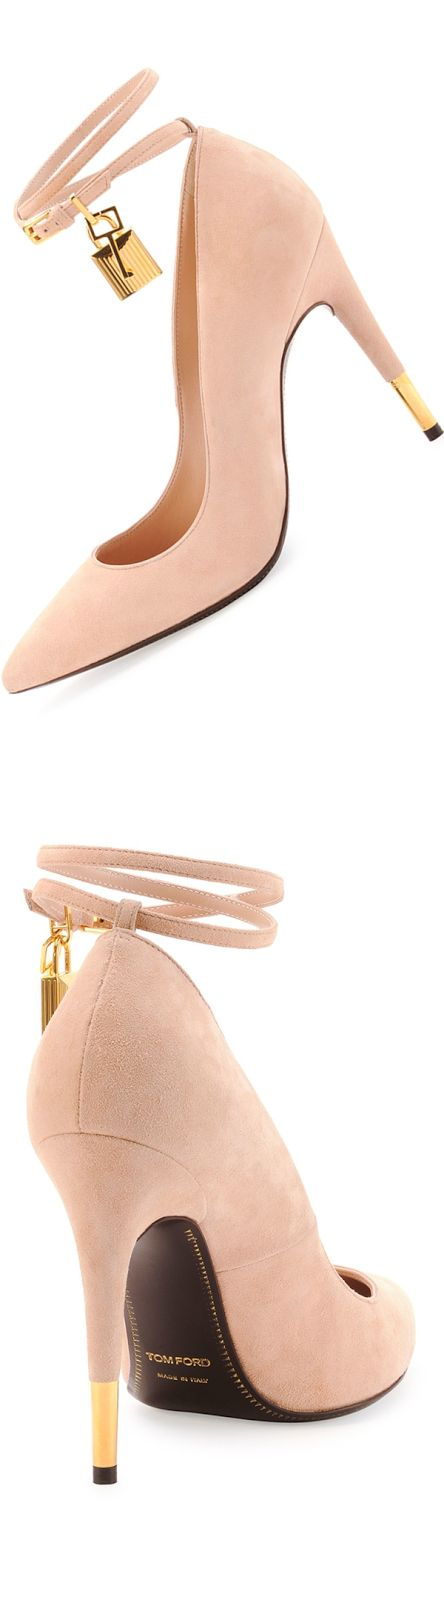 Tom Ford Suede Ankle-Lock Pump, Wild Rose (with Tom Ford golden hardware and adjustable double ankle strap)